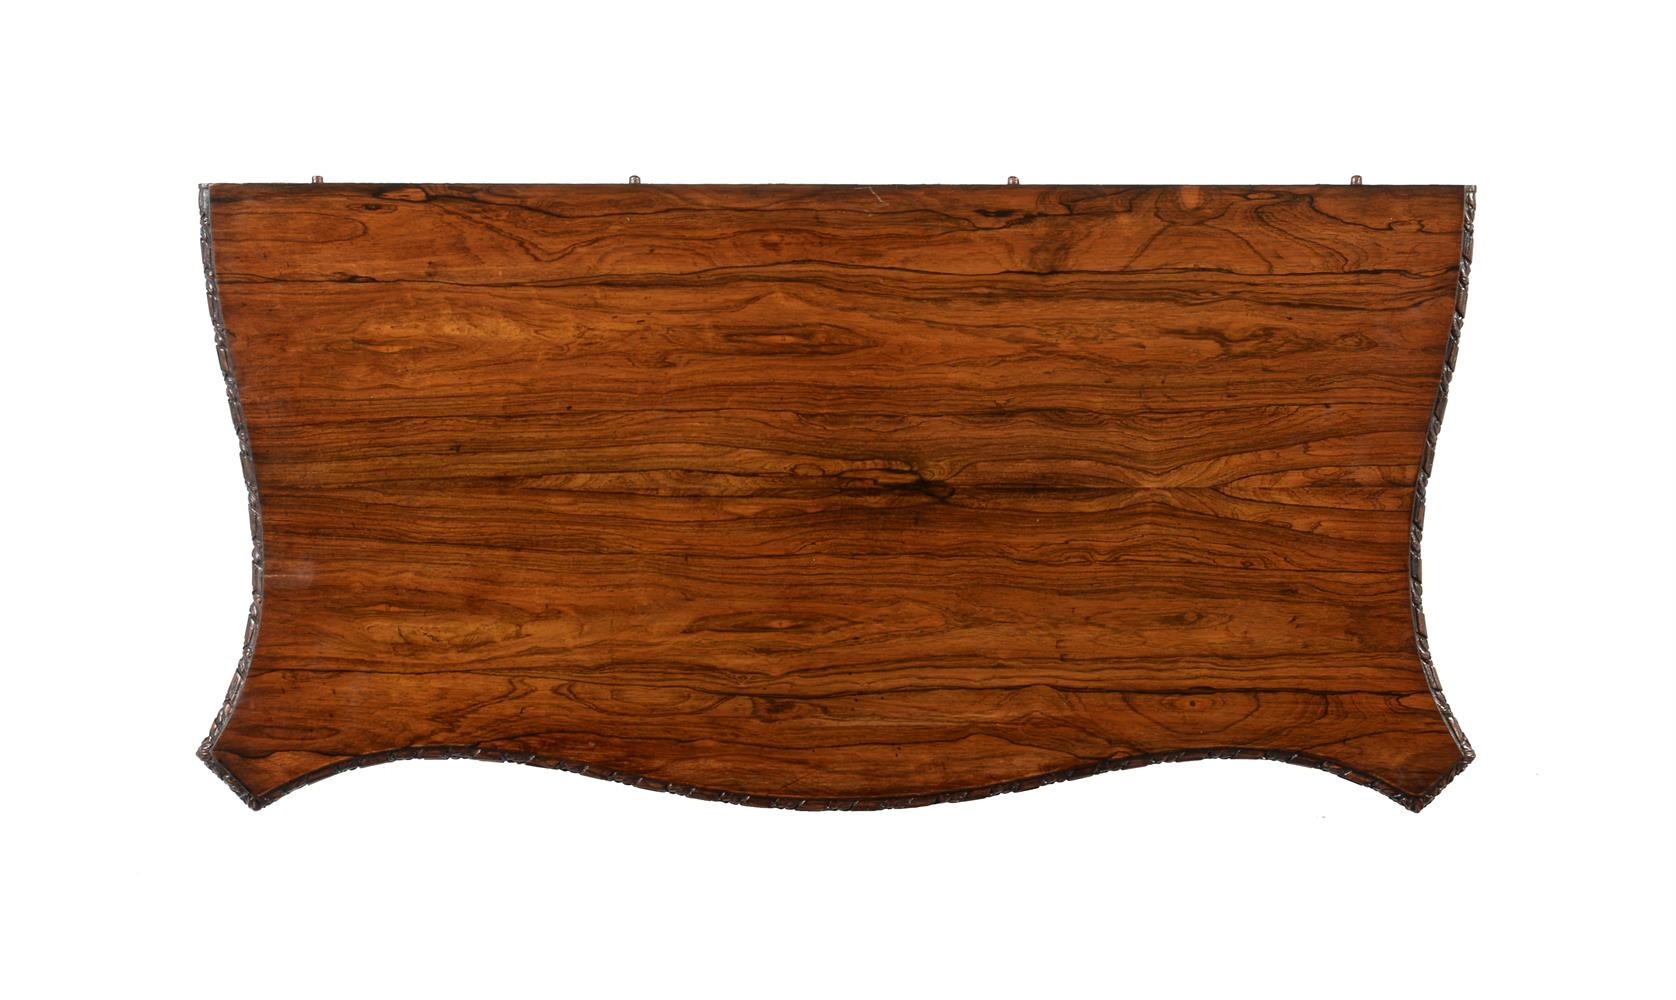 Y A GEORGE IV ROSEWOOD SERPENTINE FOLDING CARD TABLE, CIRCA 1825 - Image 5 of 5